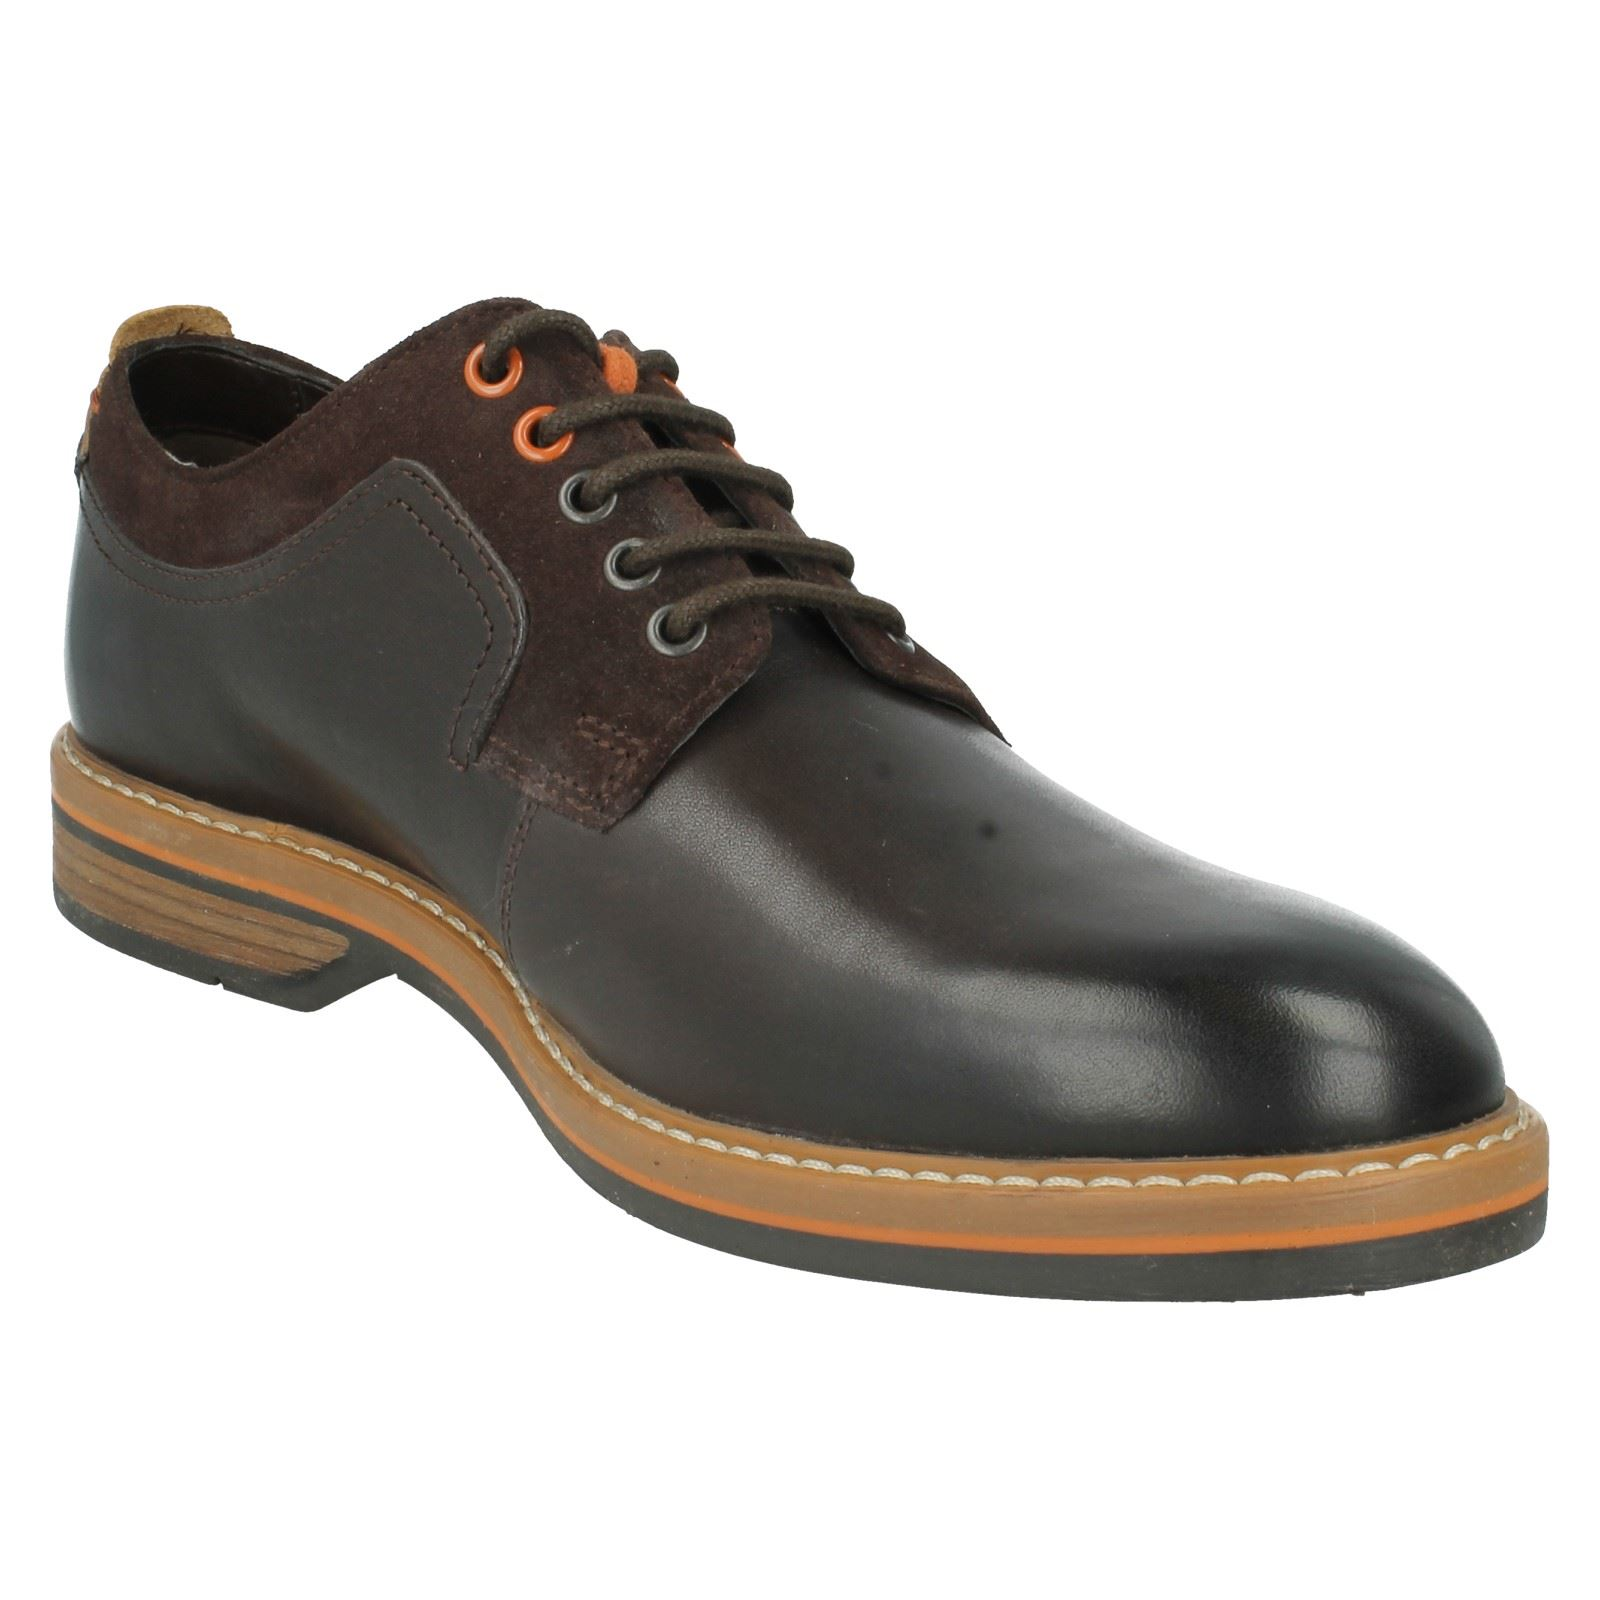 Men's Clarks Formal Lace Pitney Up Shoes Style - Pitney Lace Walk 722ac2